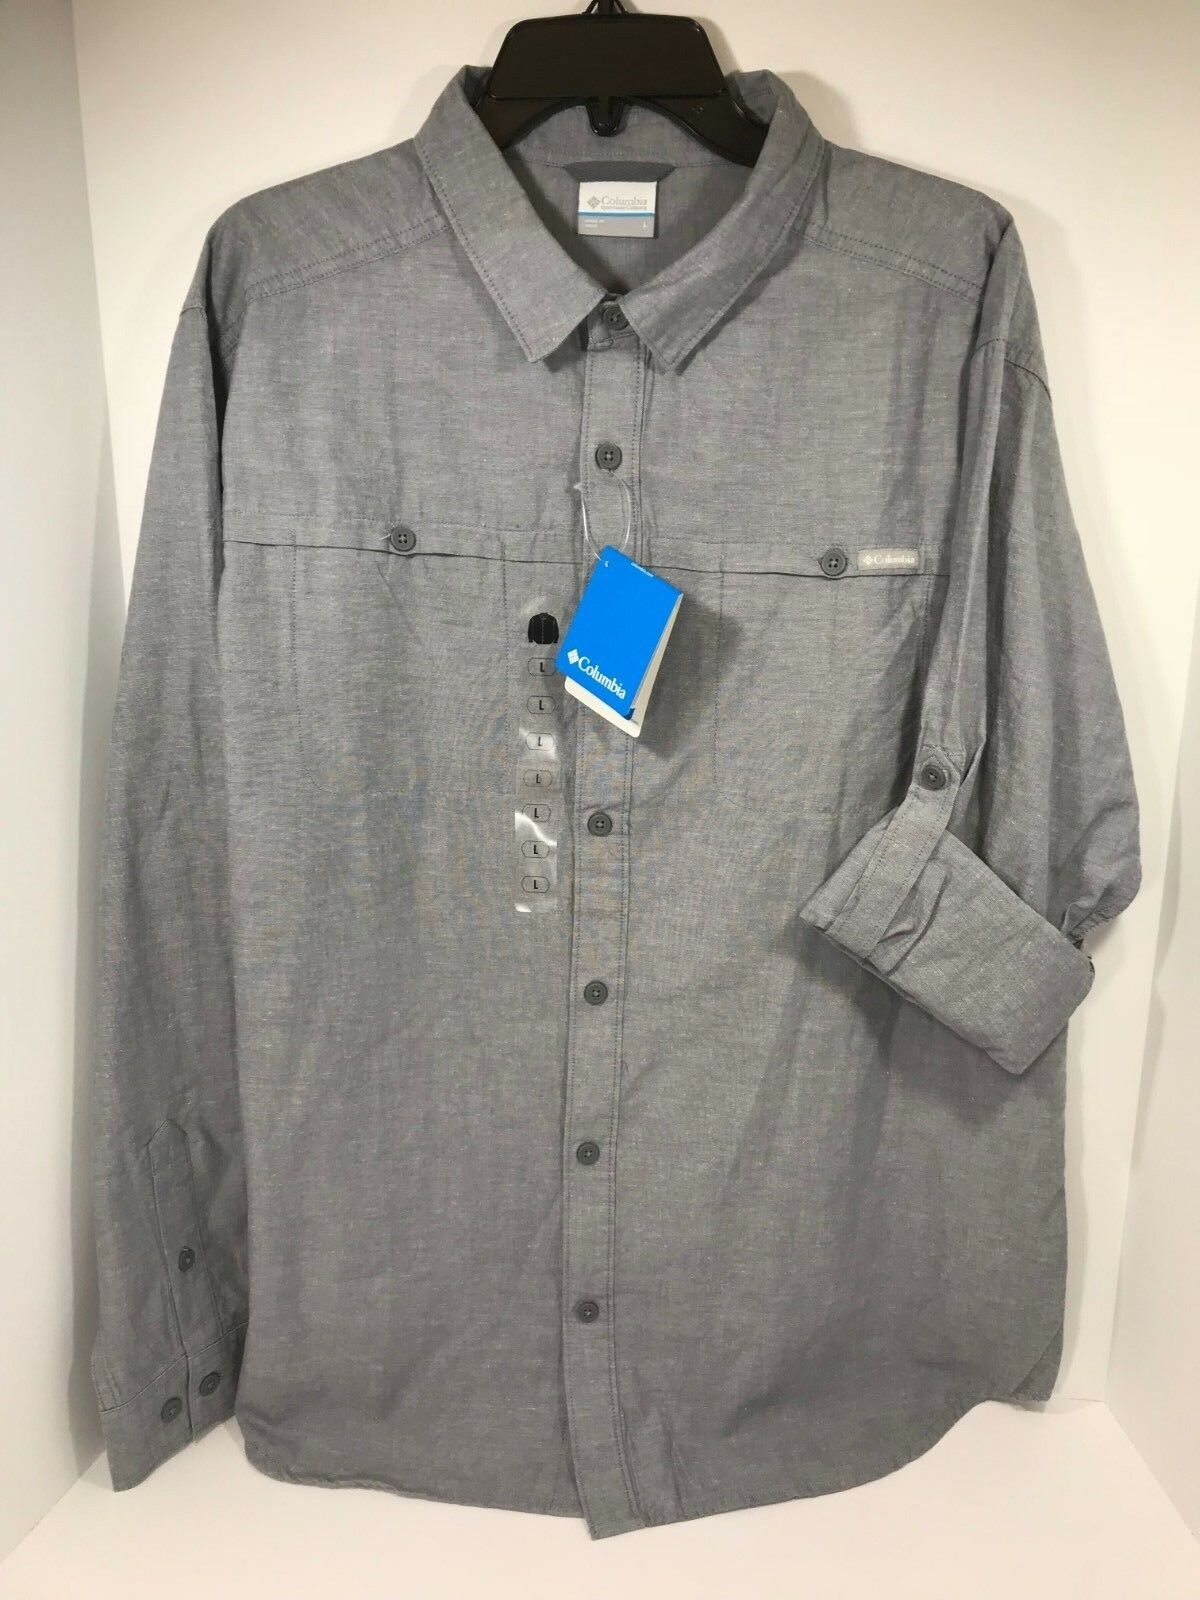 Columbia Men's Size Large Battle Mountain Cotton Long Sleeve Button Up Shirt